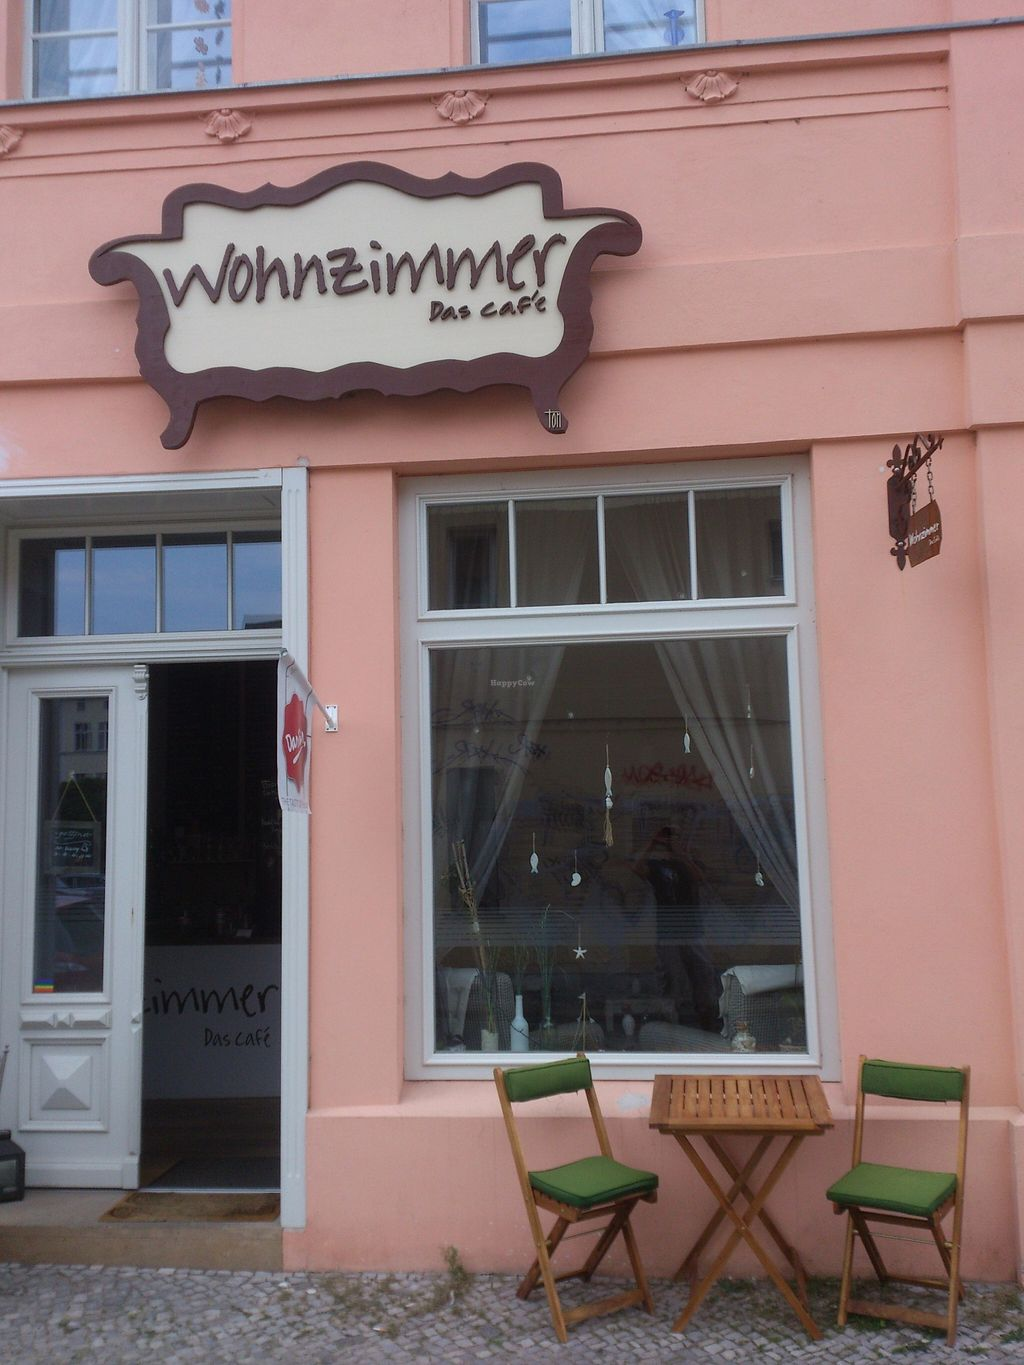 """Photo of Wohnzimmer  by <a href=""""/members/profile/Tank242"""">Tank242</a> <br/>storefront Wohnzimmer <br/> September 8, 2015  - <a href='/contact/abuse/image/62864/116870'>Report</a>"""